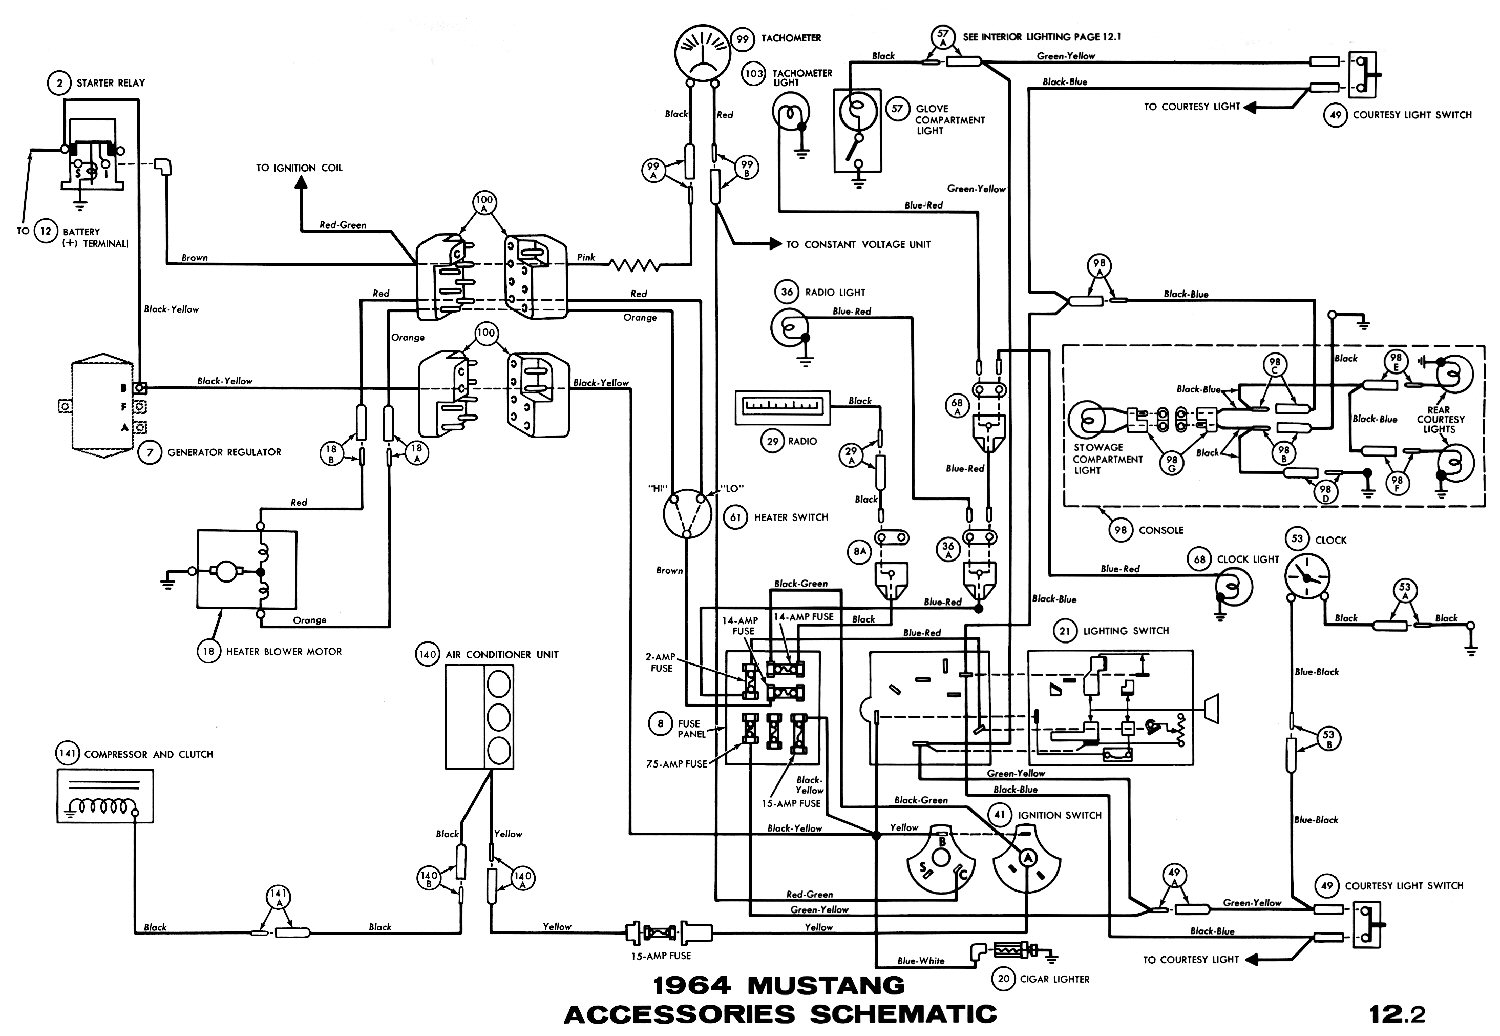 1969 mustang under dash wiring diagram kenwood radio 1973 mach 1 diagrams